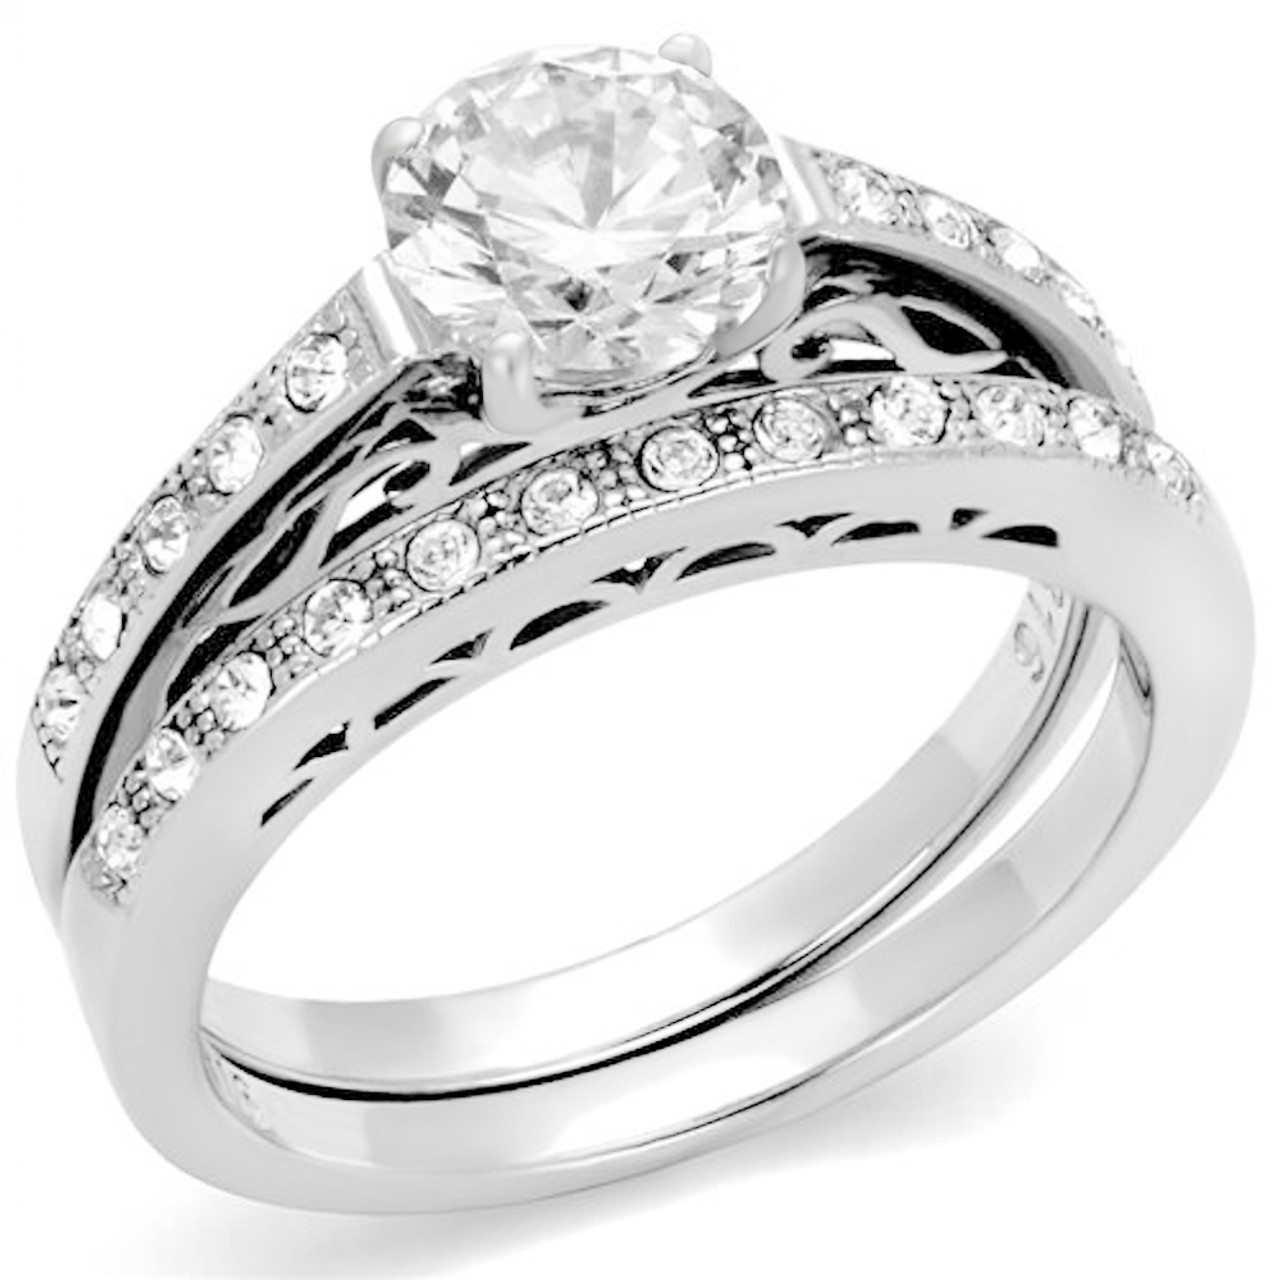 2 ct Round Cubic Zirconia Solitaire 316L Stainless Steel Engagement Ring 5-10